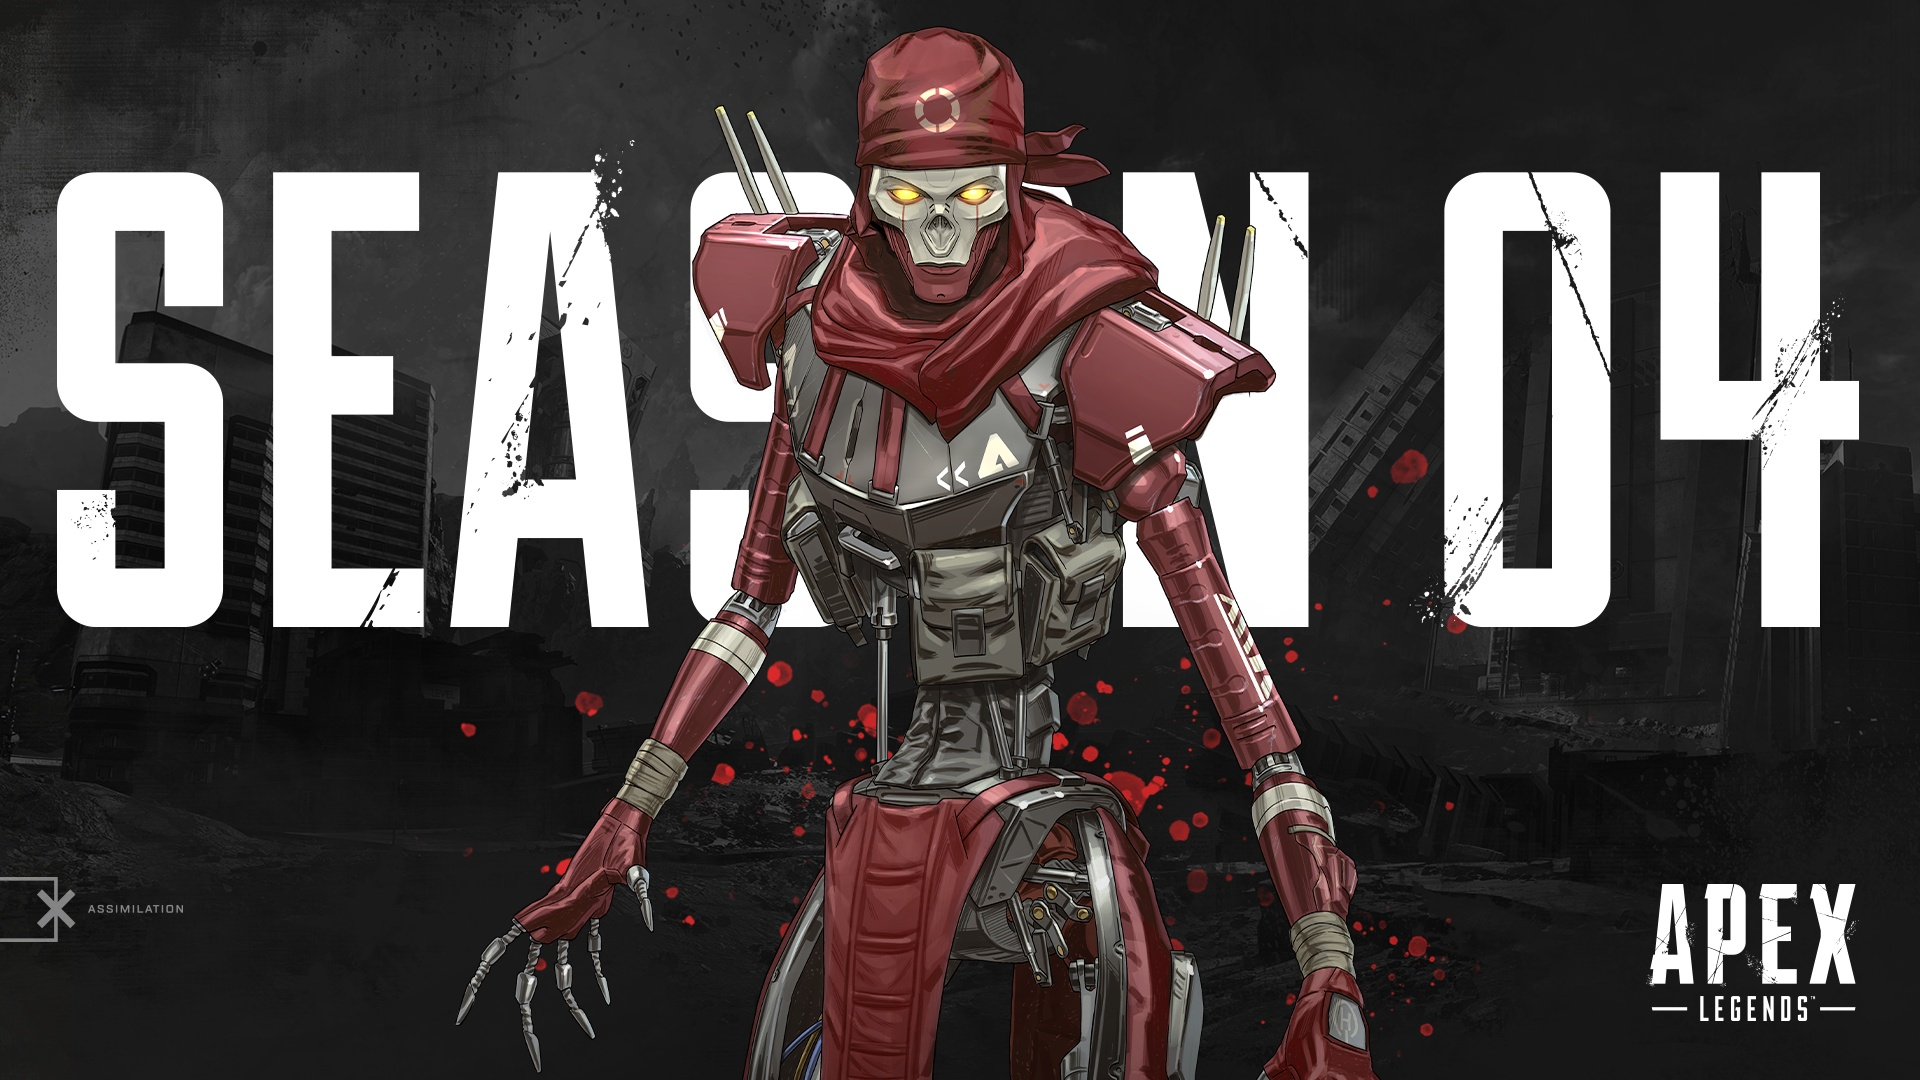 Video For Apex Legends Season 4 – Assimilation Coming February 4 to Xbox One